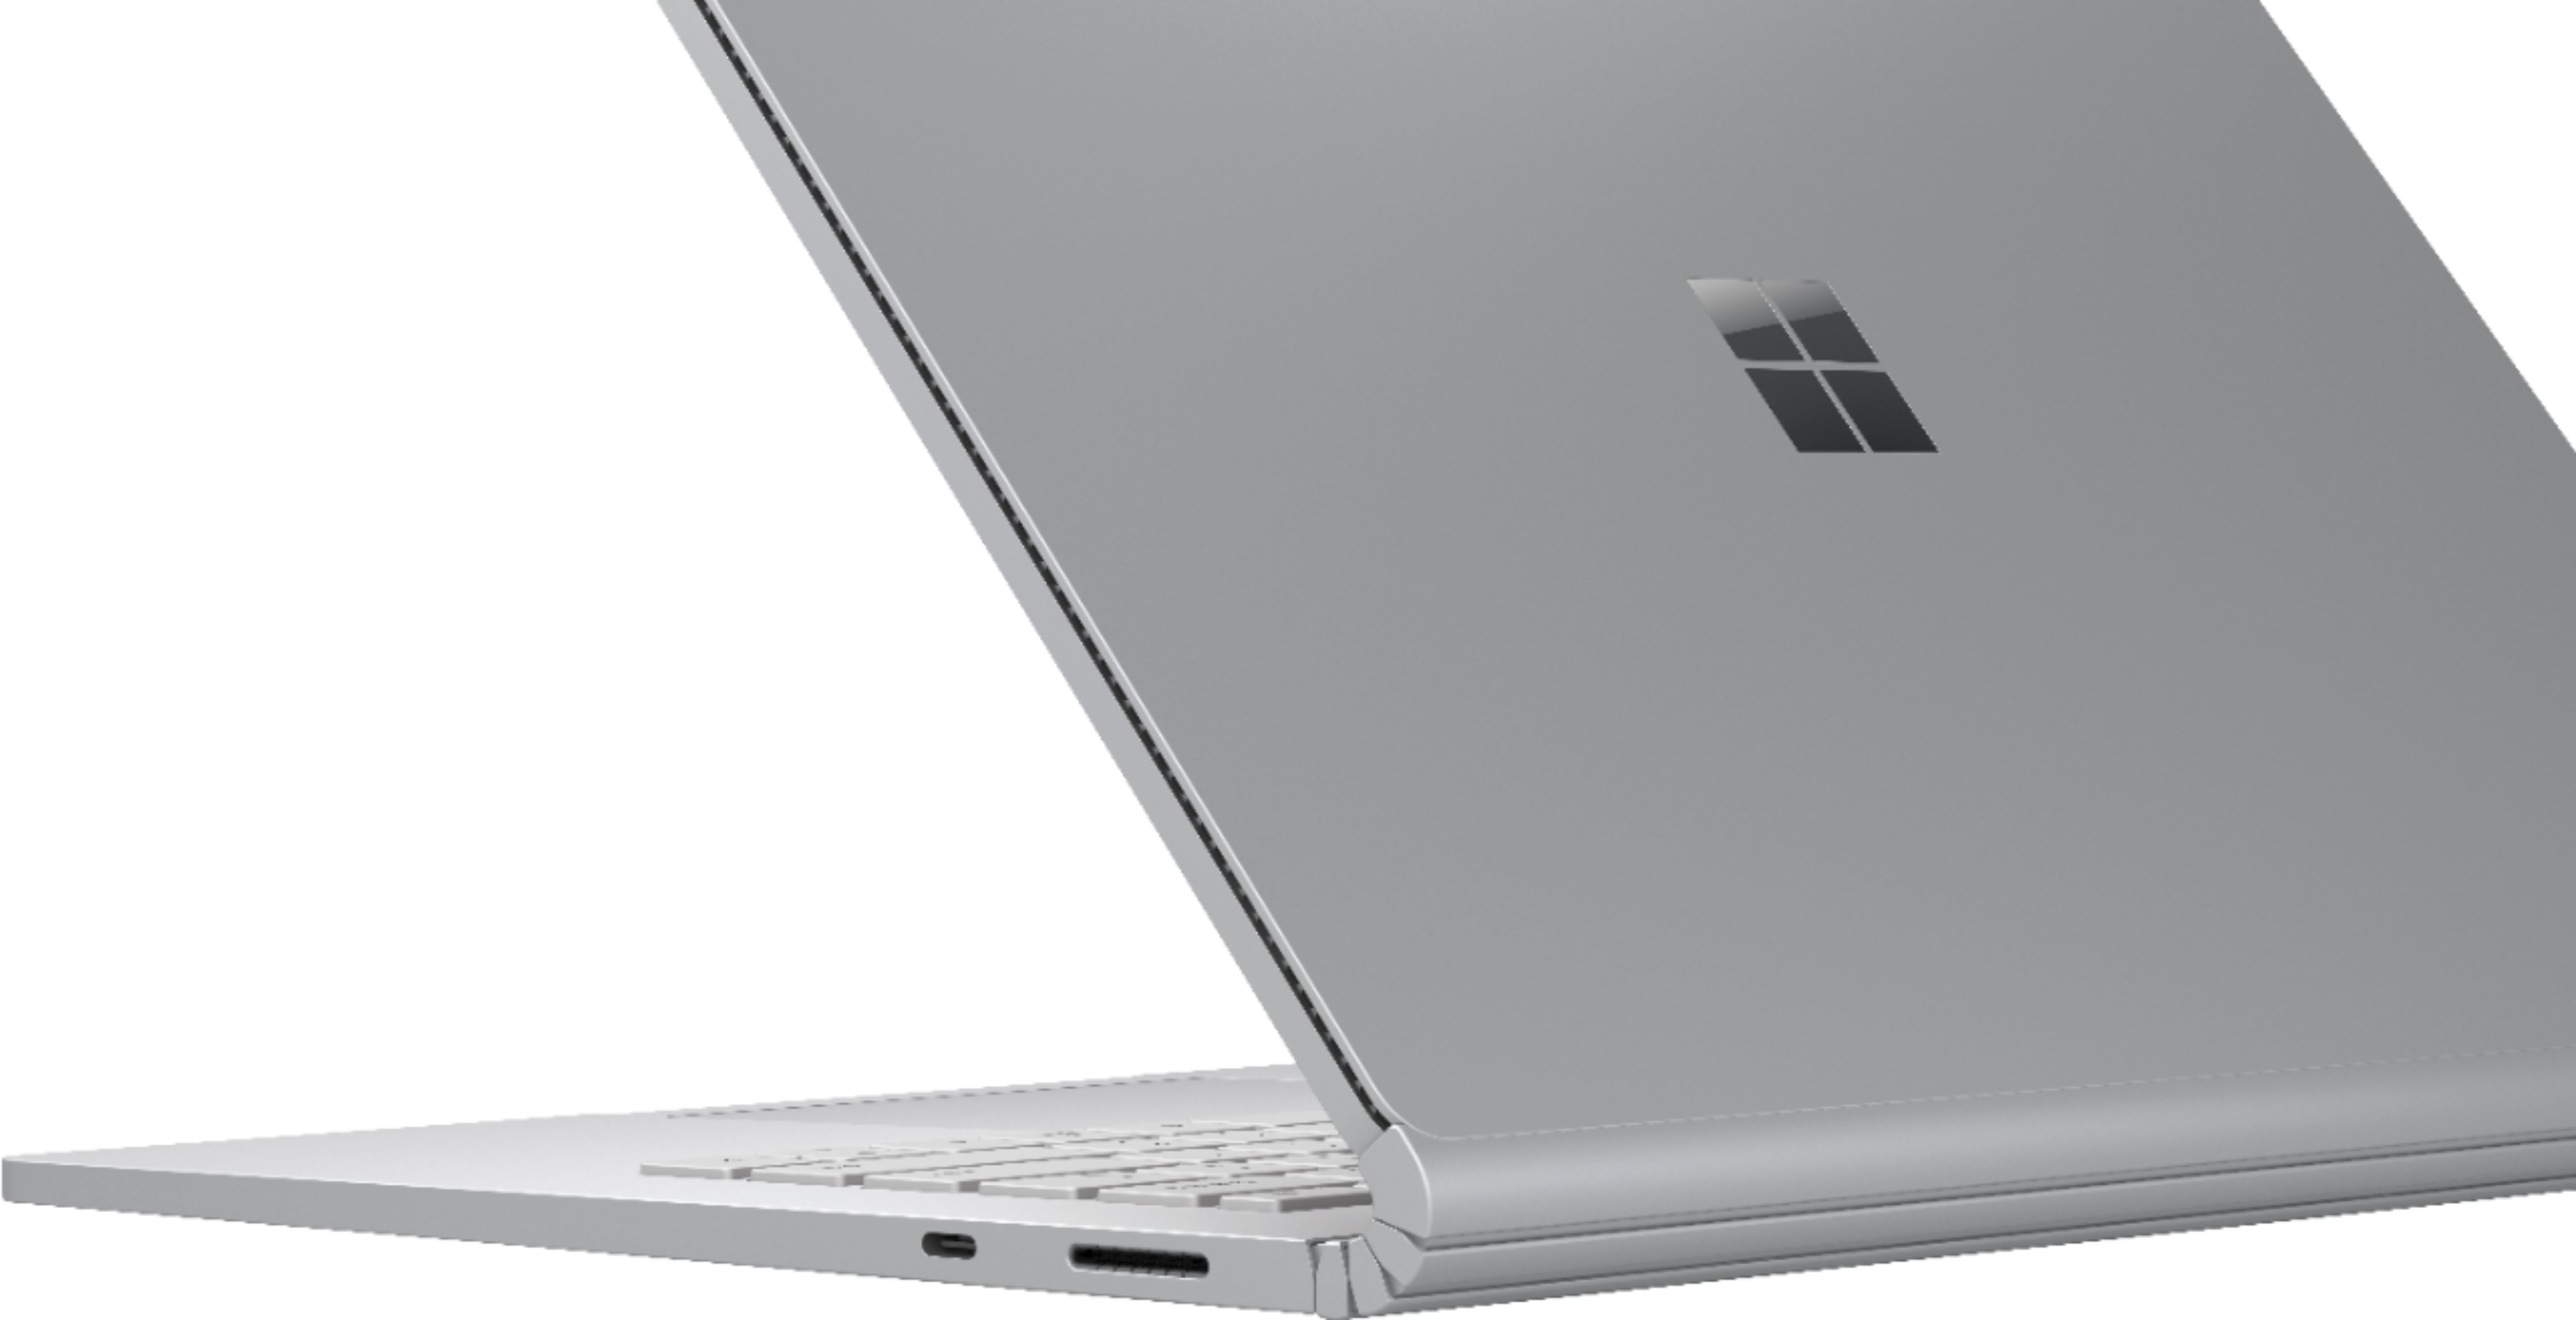 """Alt View Zoom 12. Microsoft - Surface Book 3 13.5"""" Touch-Screen PixelSense™ - 2-in-1 Laptop - Intel Core i5 - 8GB Memory - 256GB SSD - Platinum."""